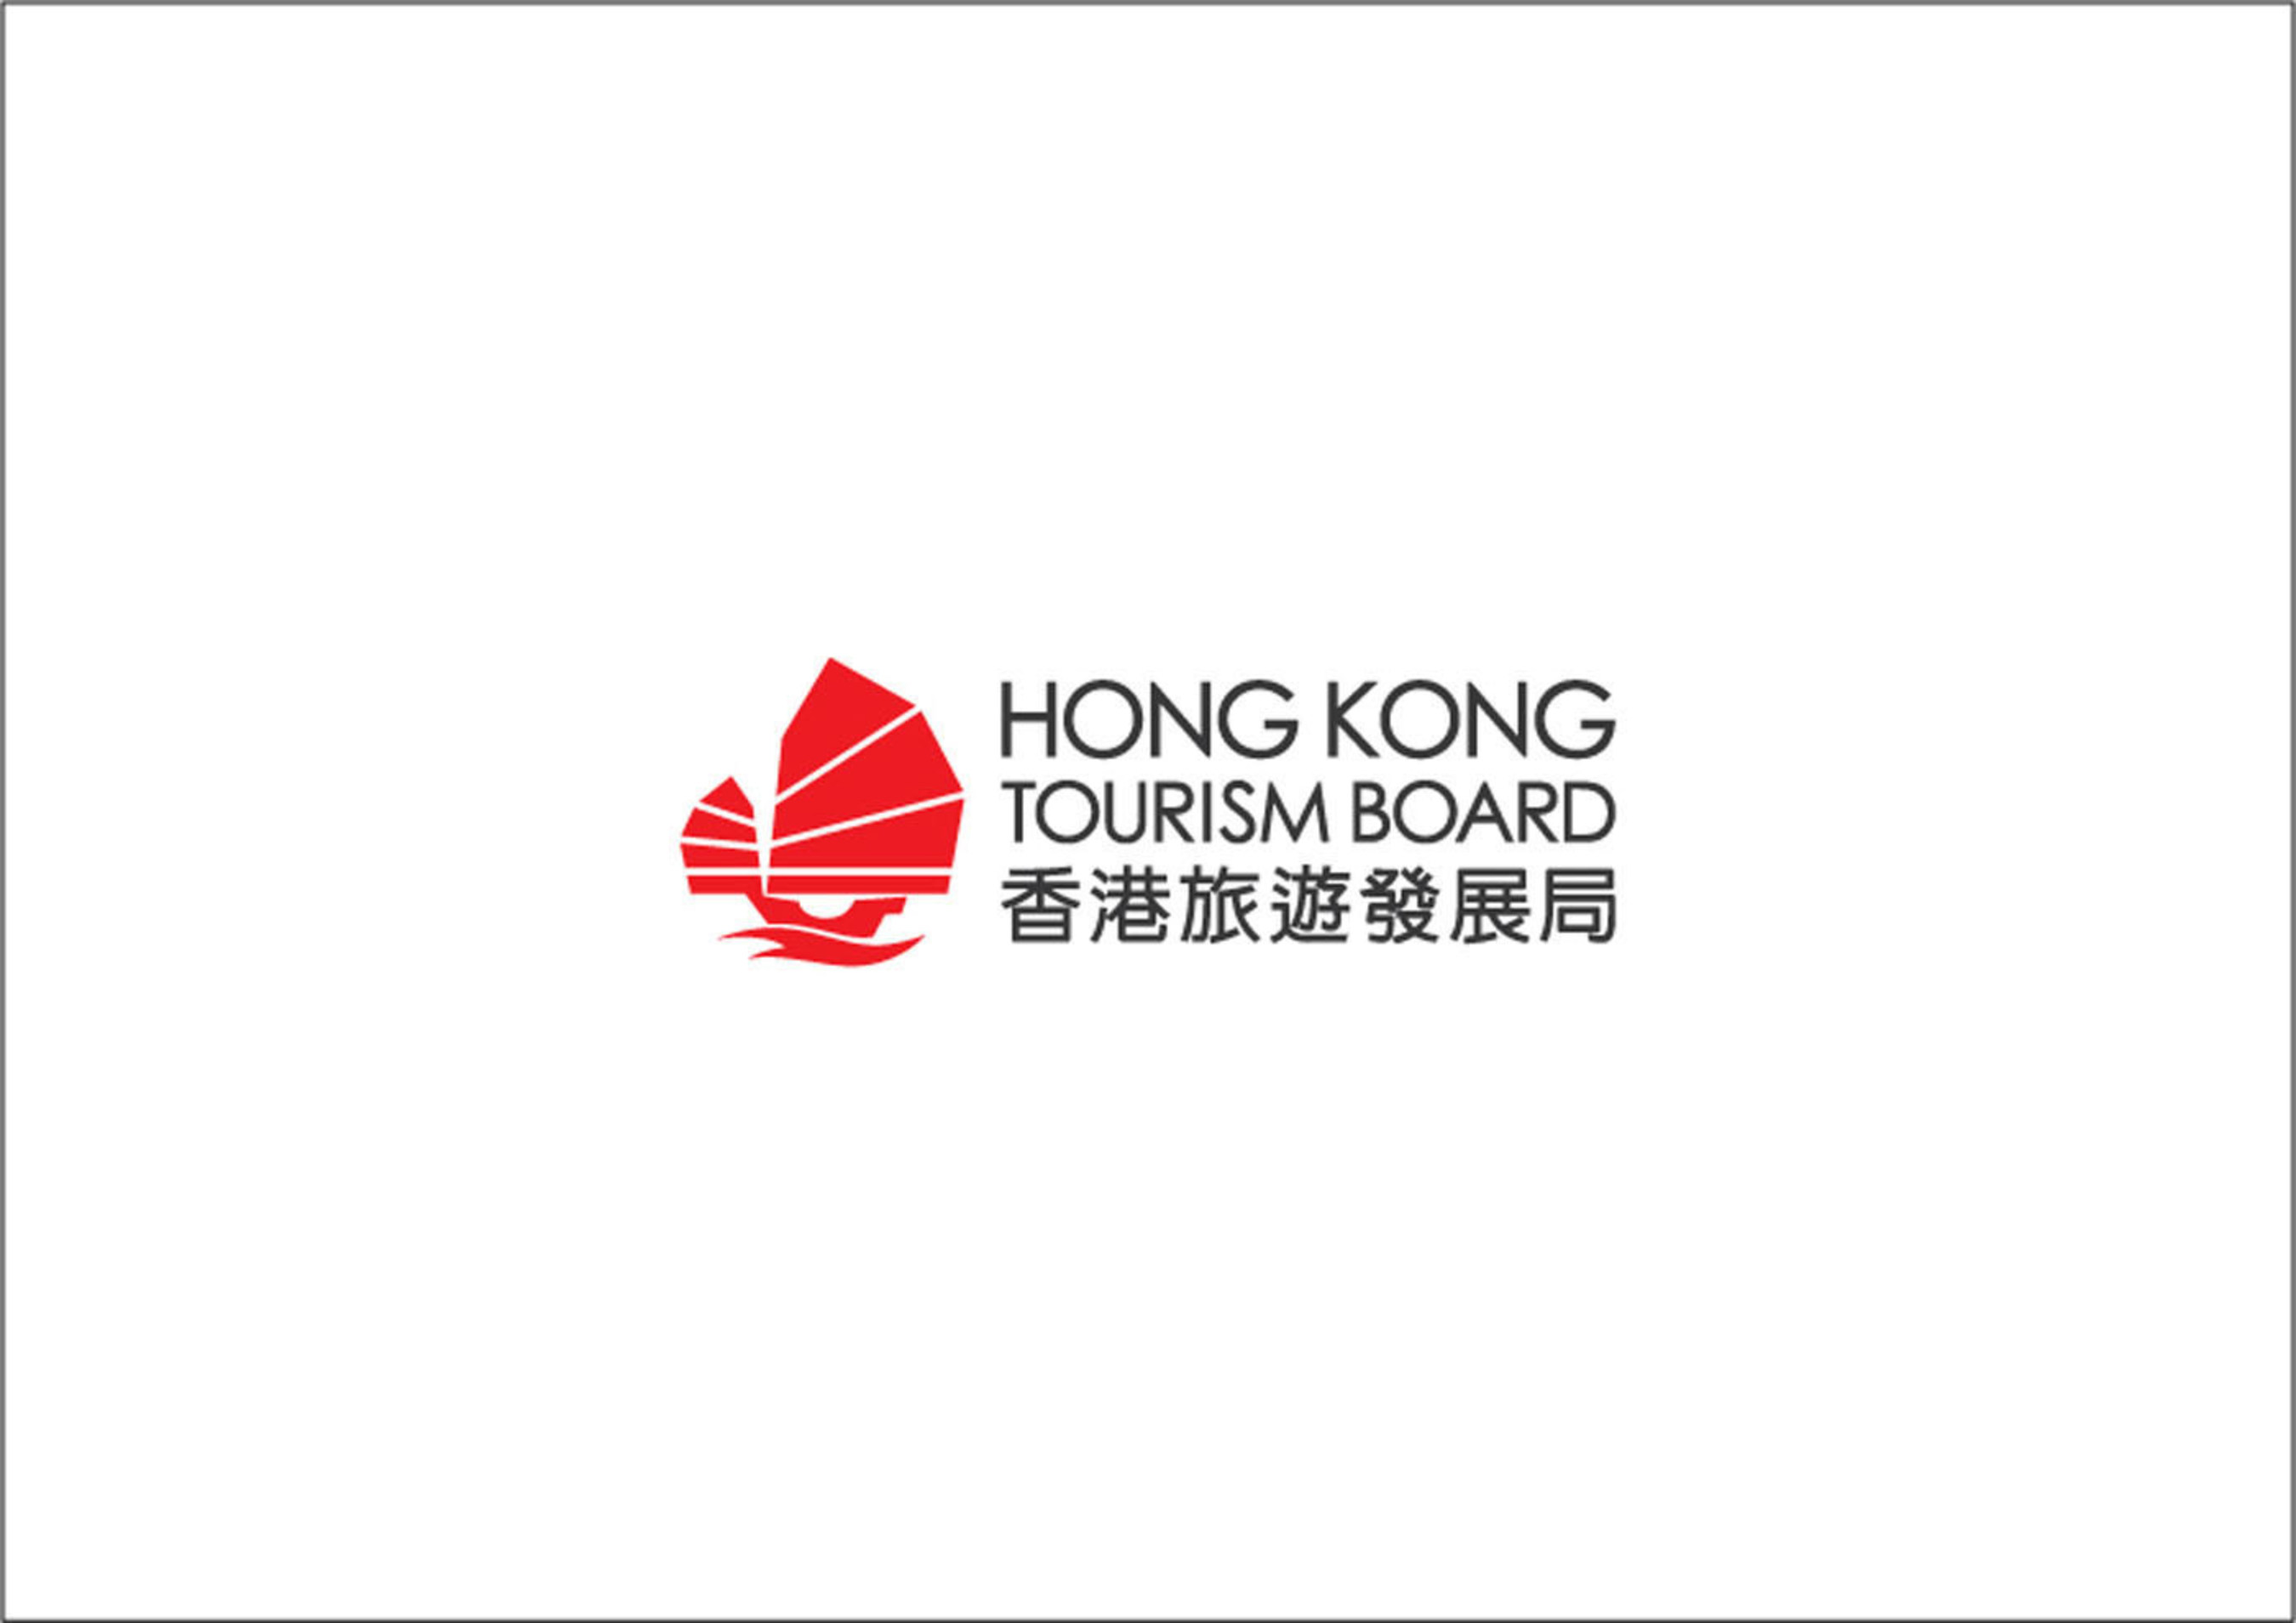 hong kong cruises to new heights with strong passenger throughput and ship call growth. Black Bedroom Furniture Sets. Home Design Ideas